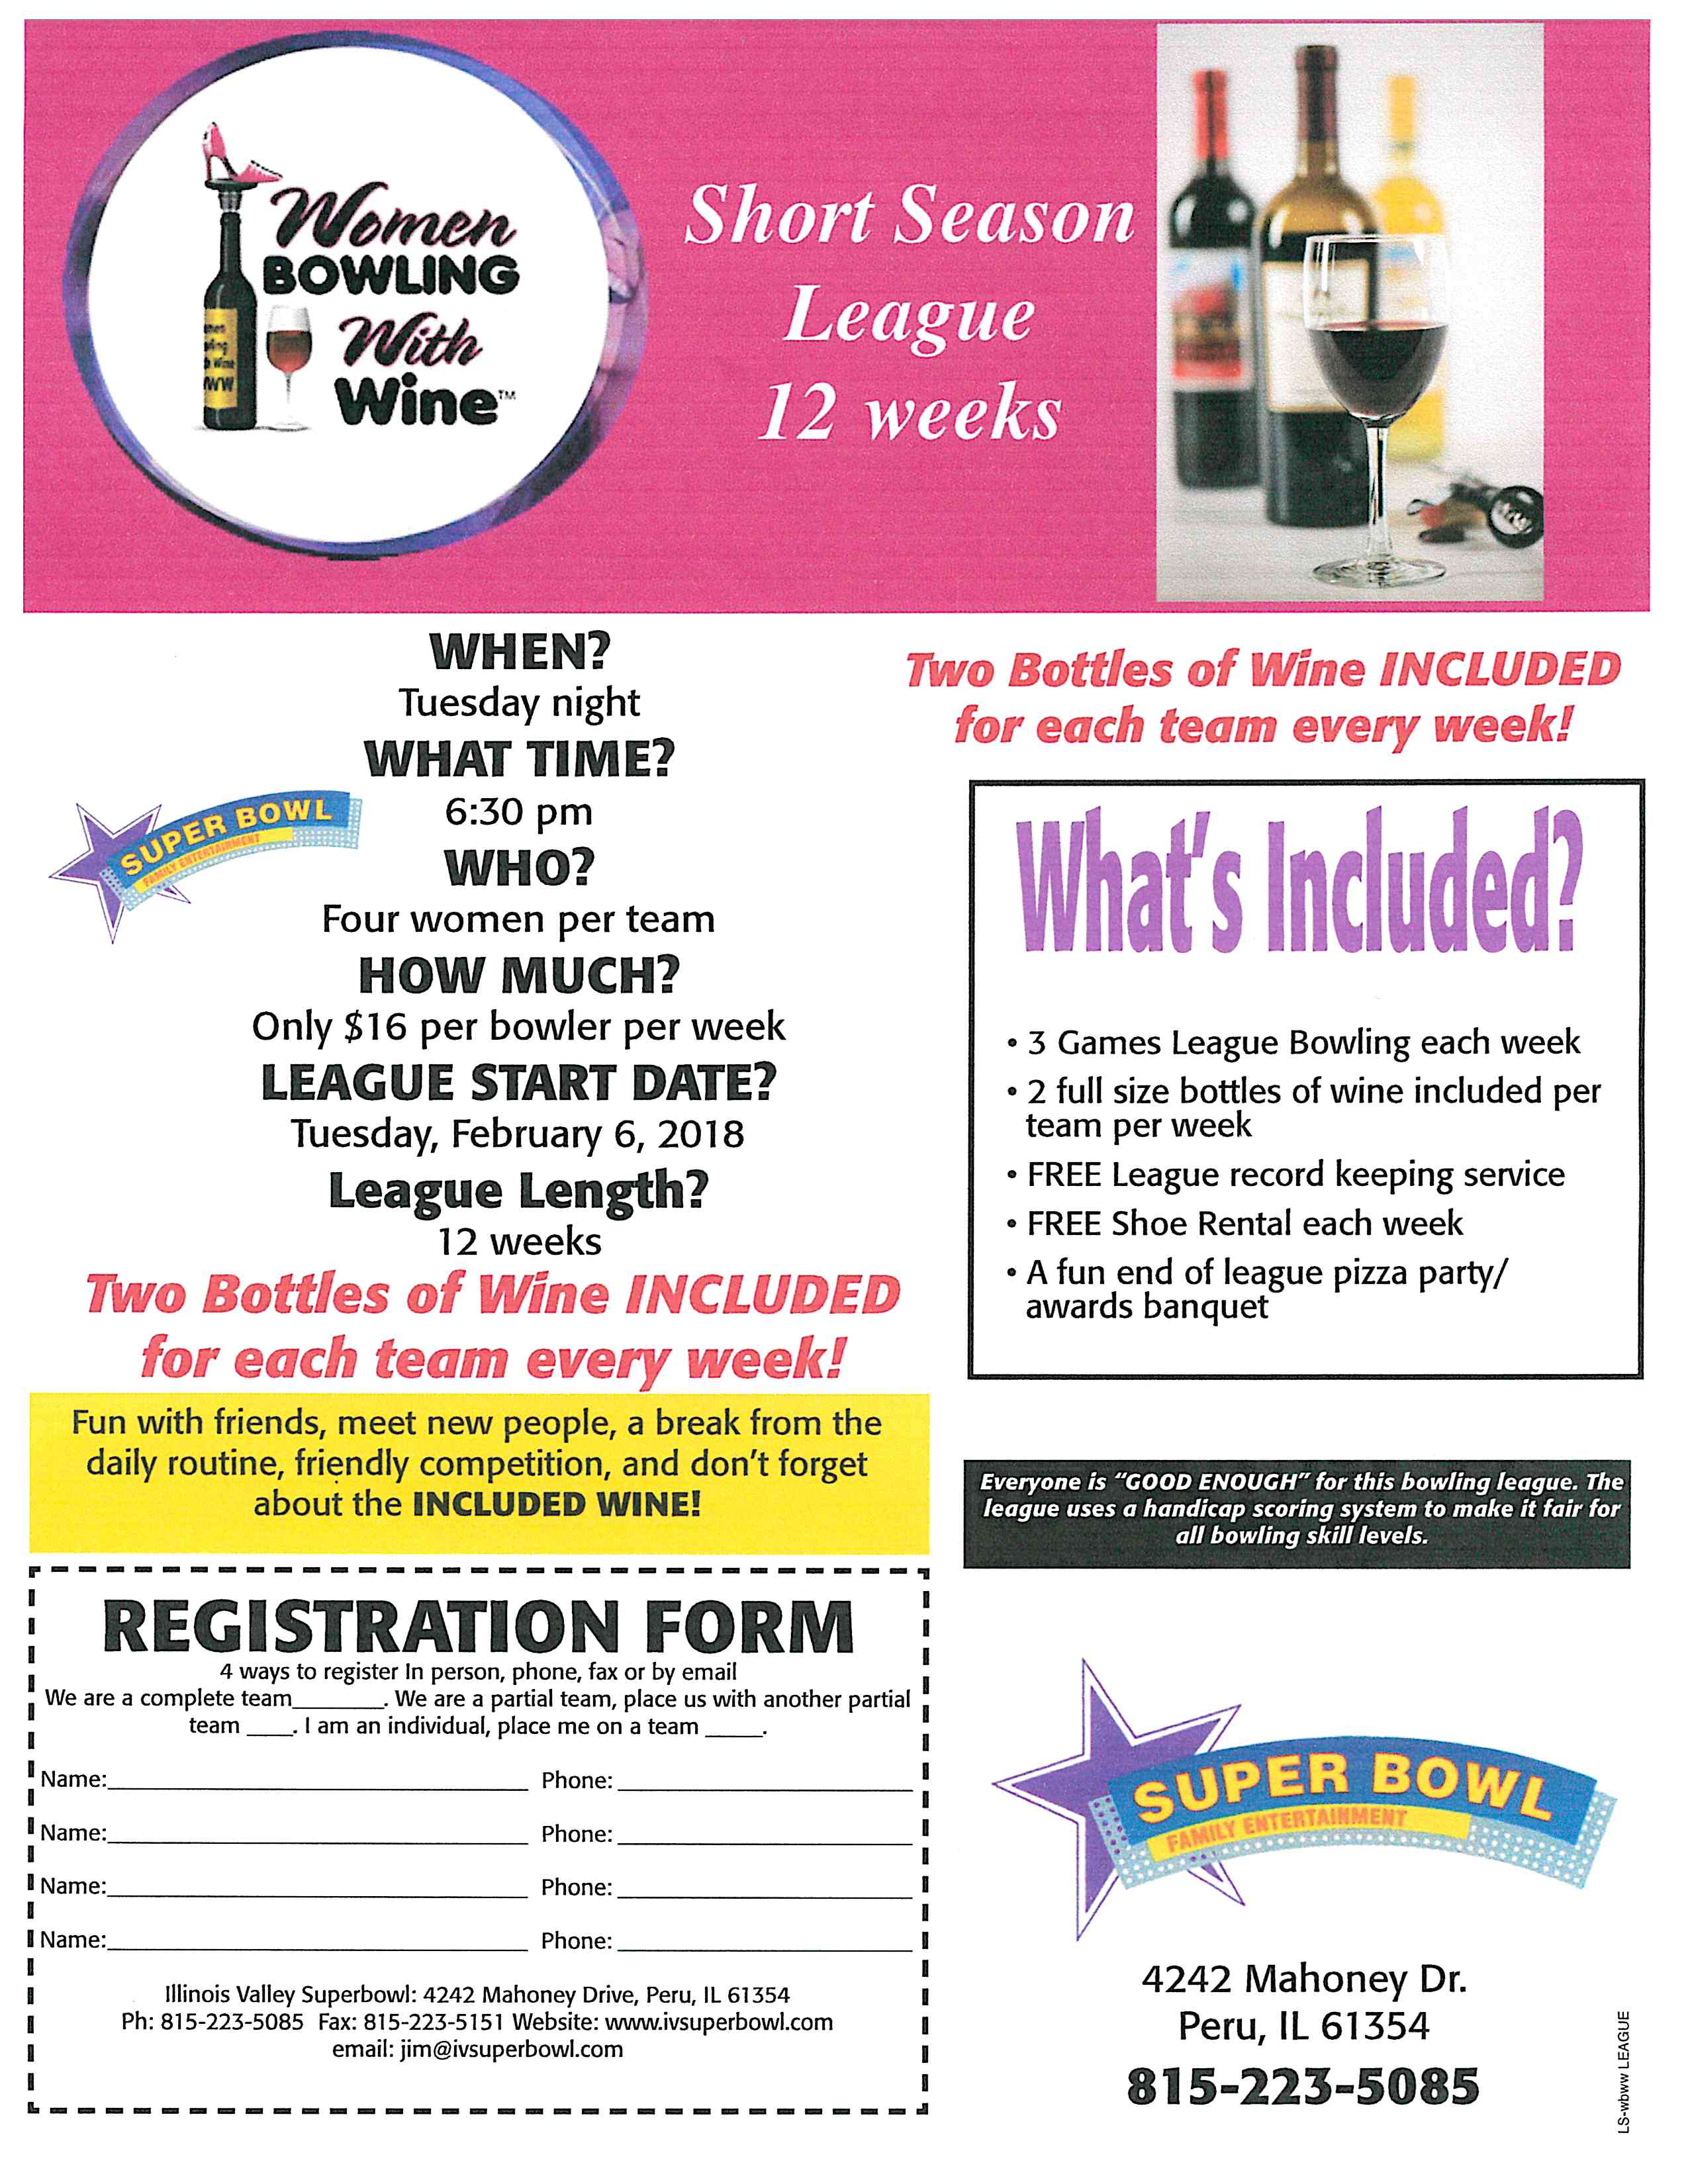 Women Bowling League